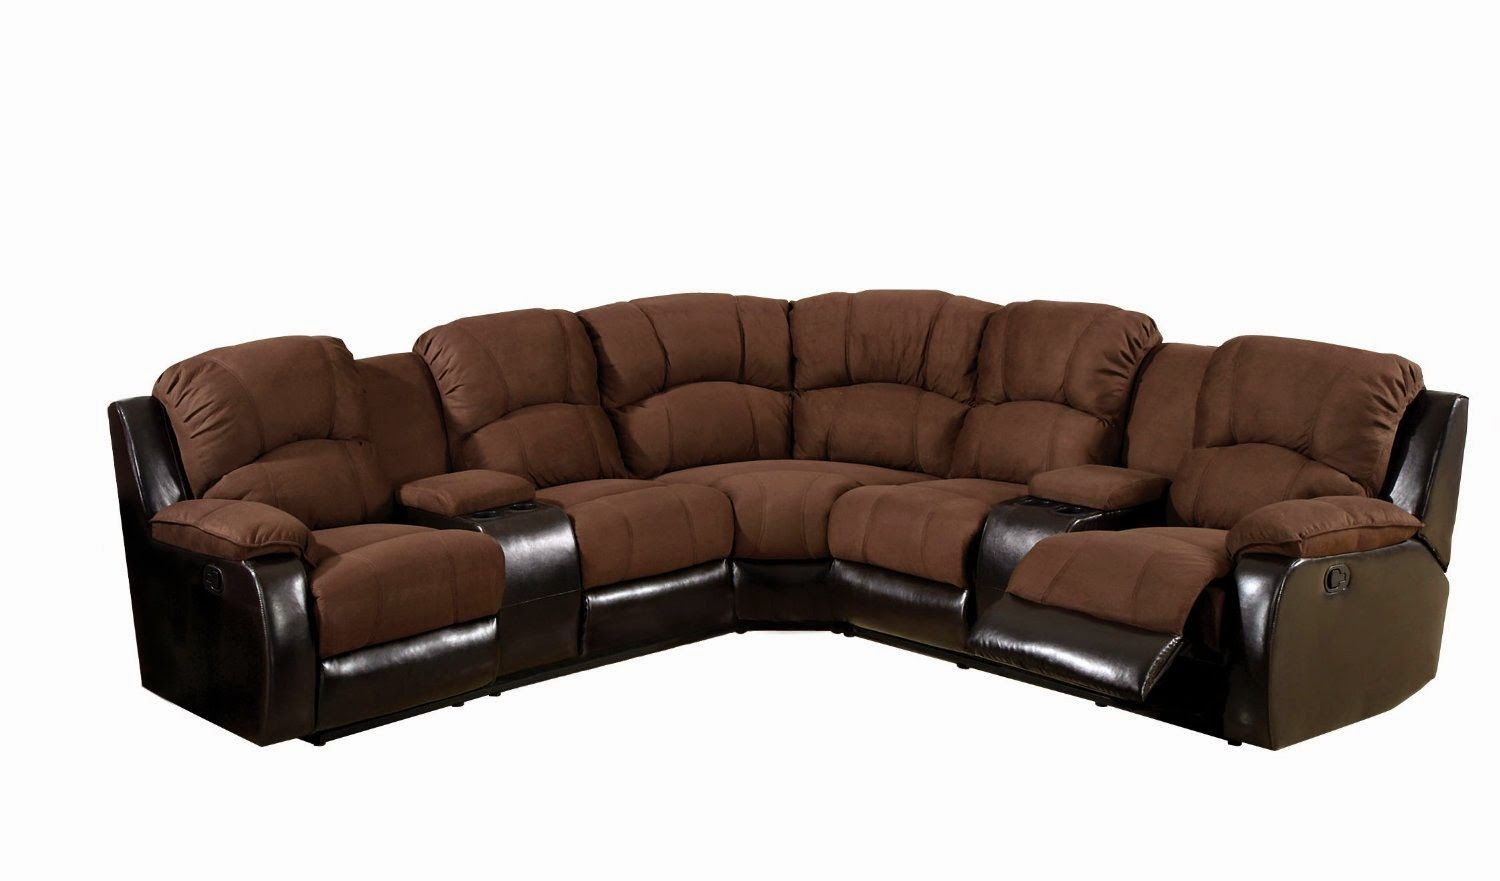 93 Reference Of Sleeper Recliner Sofa Sectional In 2020 Sectional Sleeper Sofa Reclining Sectional Sectional Sofa With Recliner